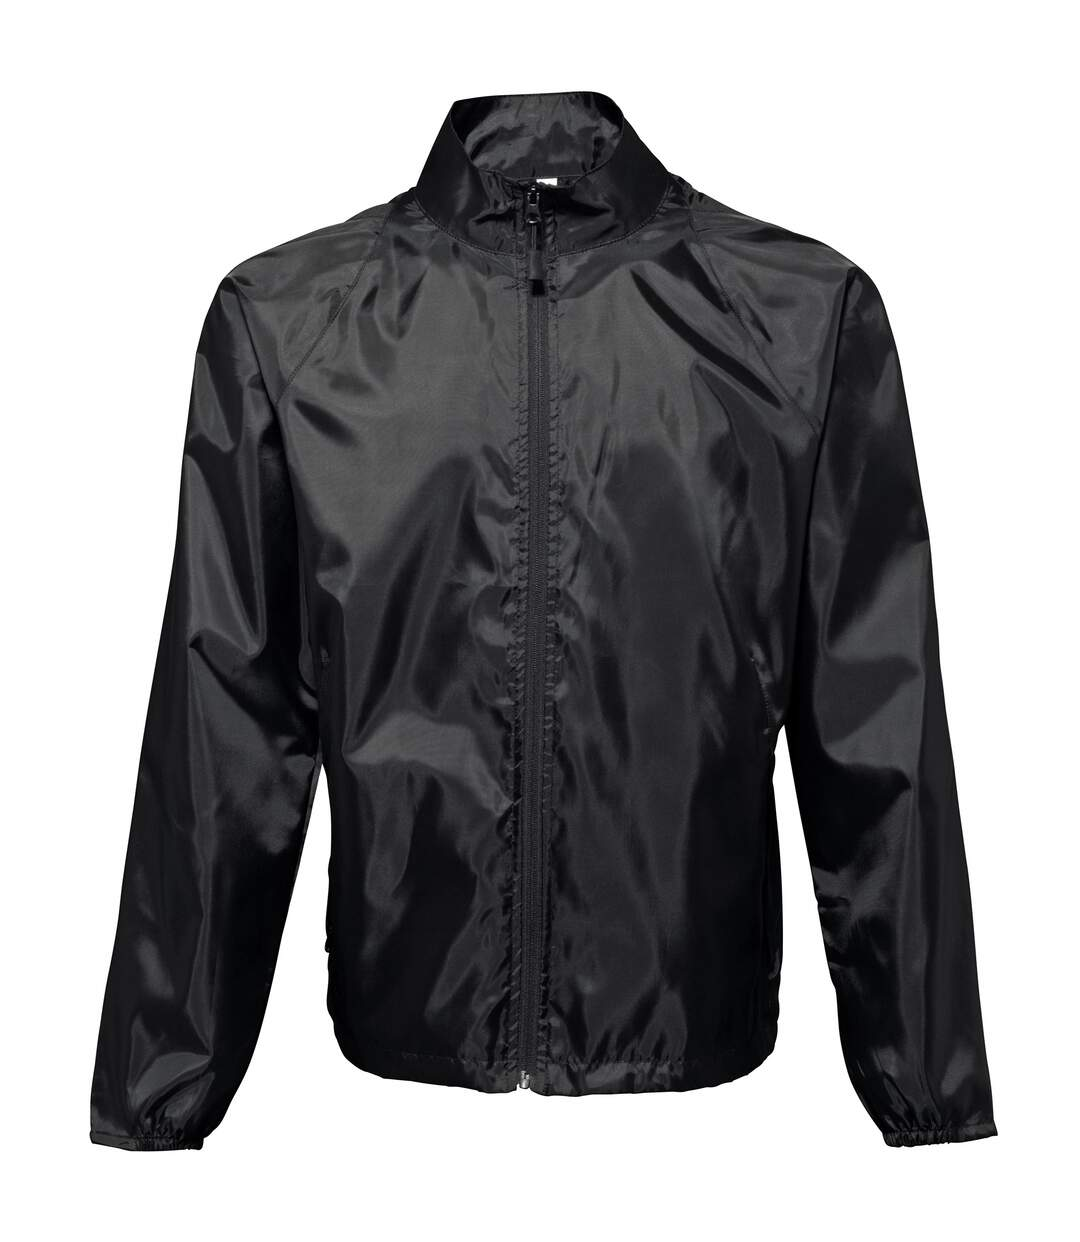 2786 Unisex Lightweight Plain Wind & Shower Resistant Jacket (Black) - UTRW2500